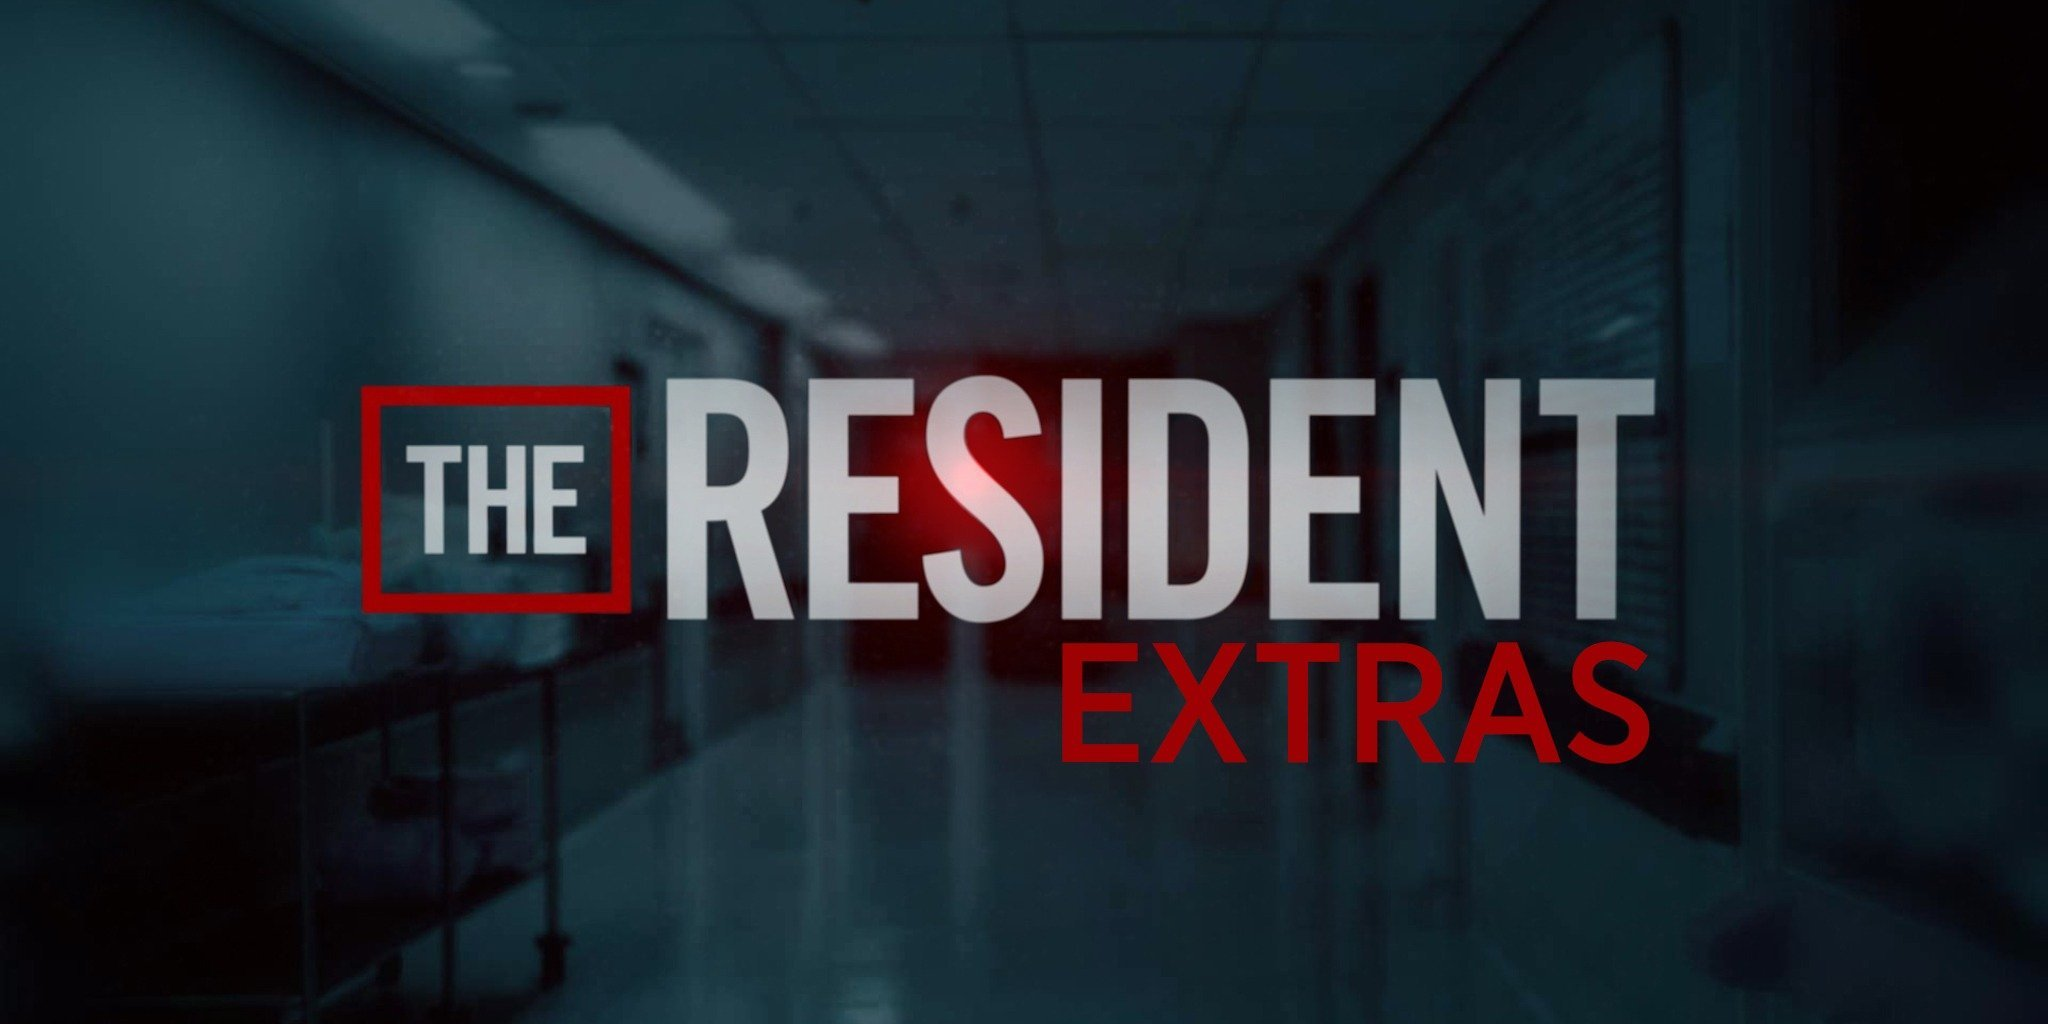 The Resident: Extras